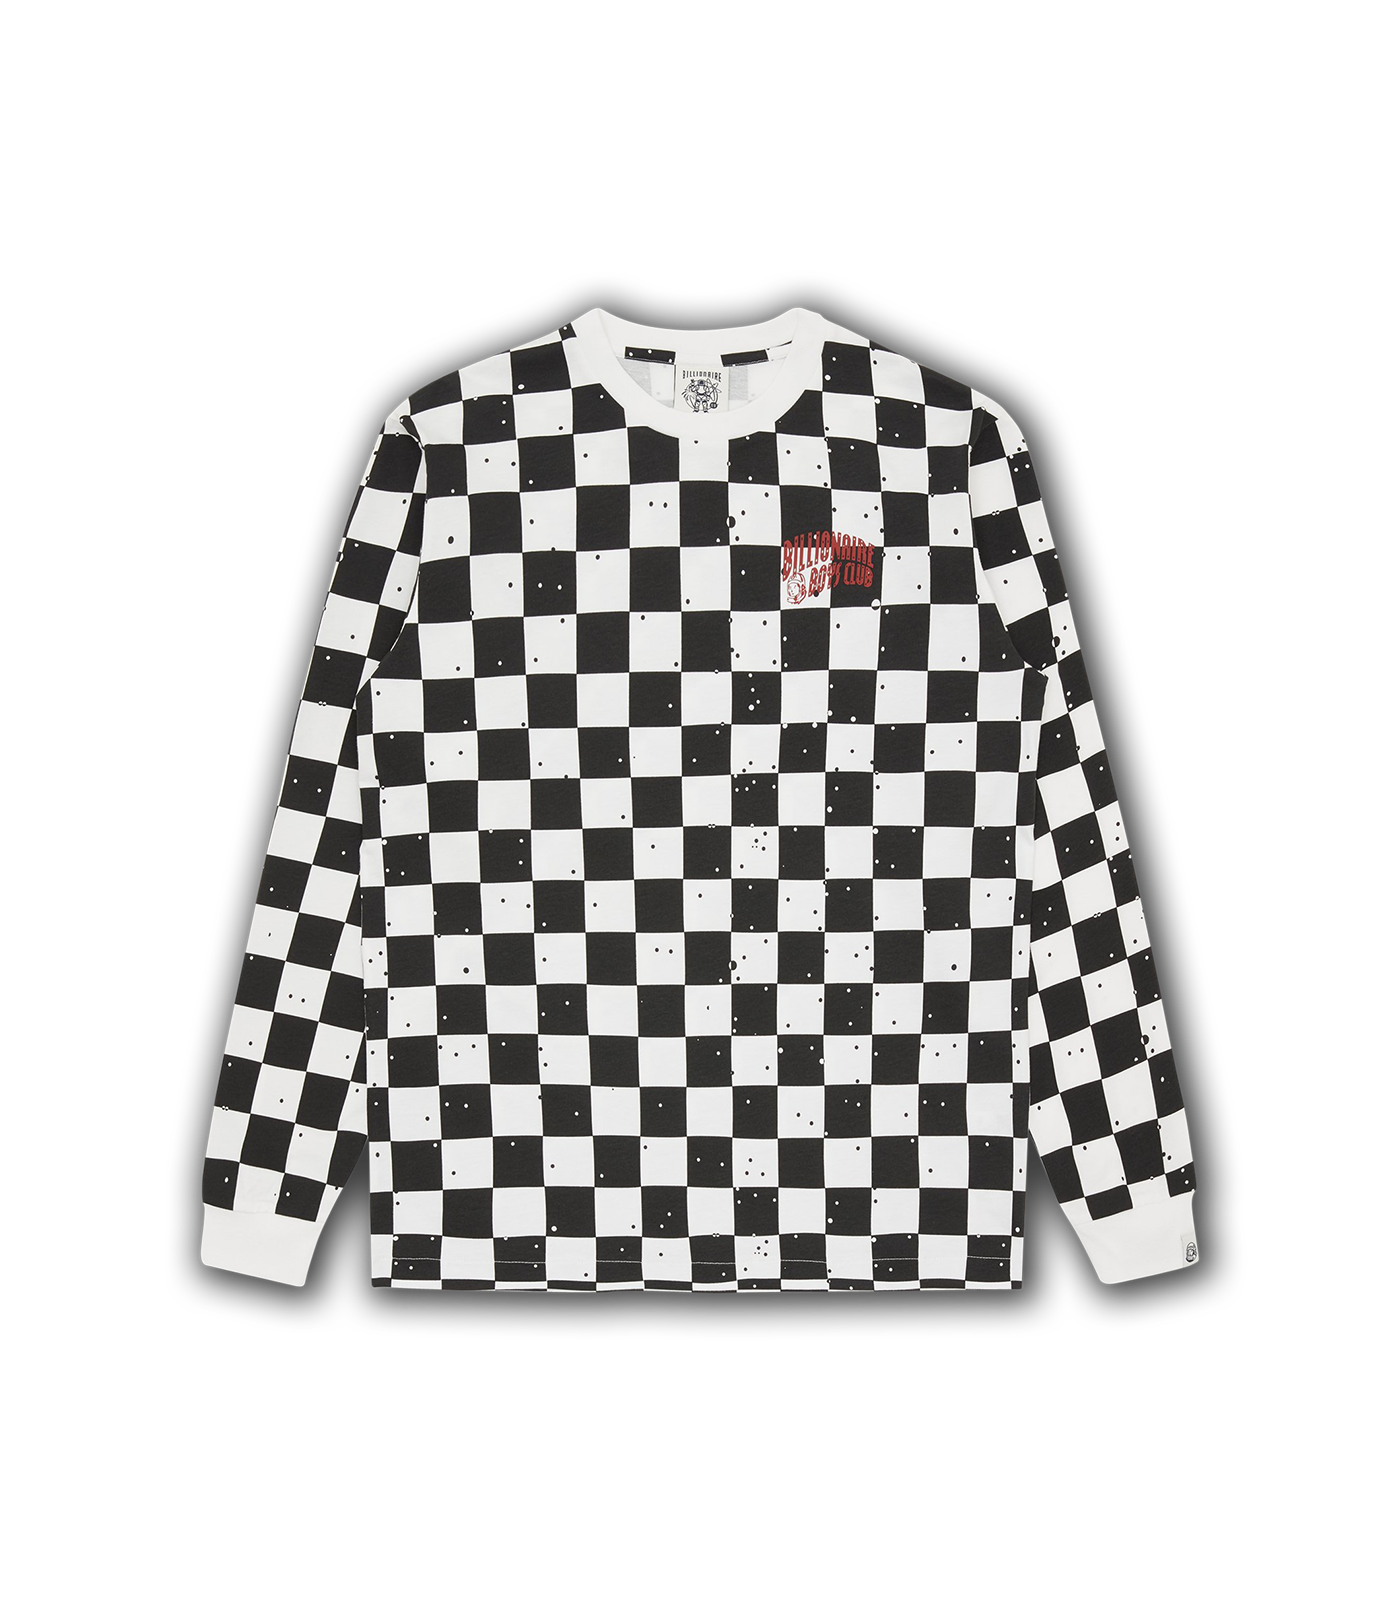 SPACE CHECK L/S T-SHIRT - WHITE